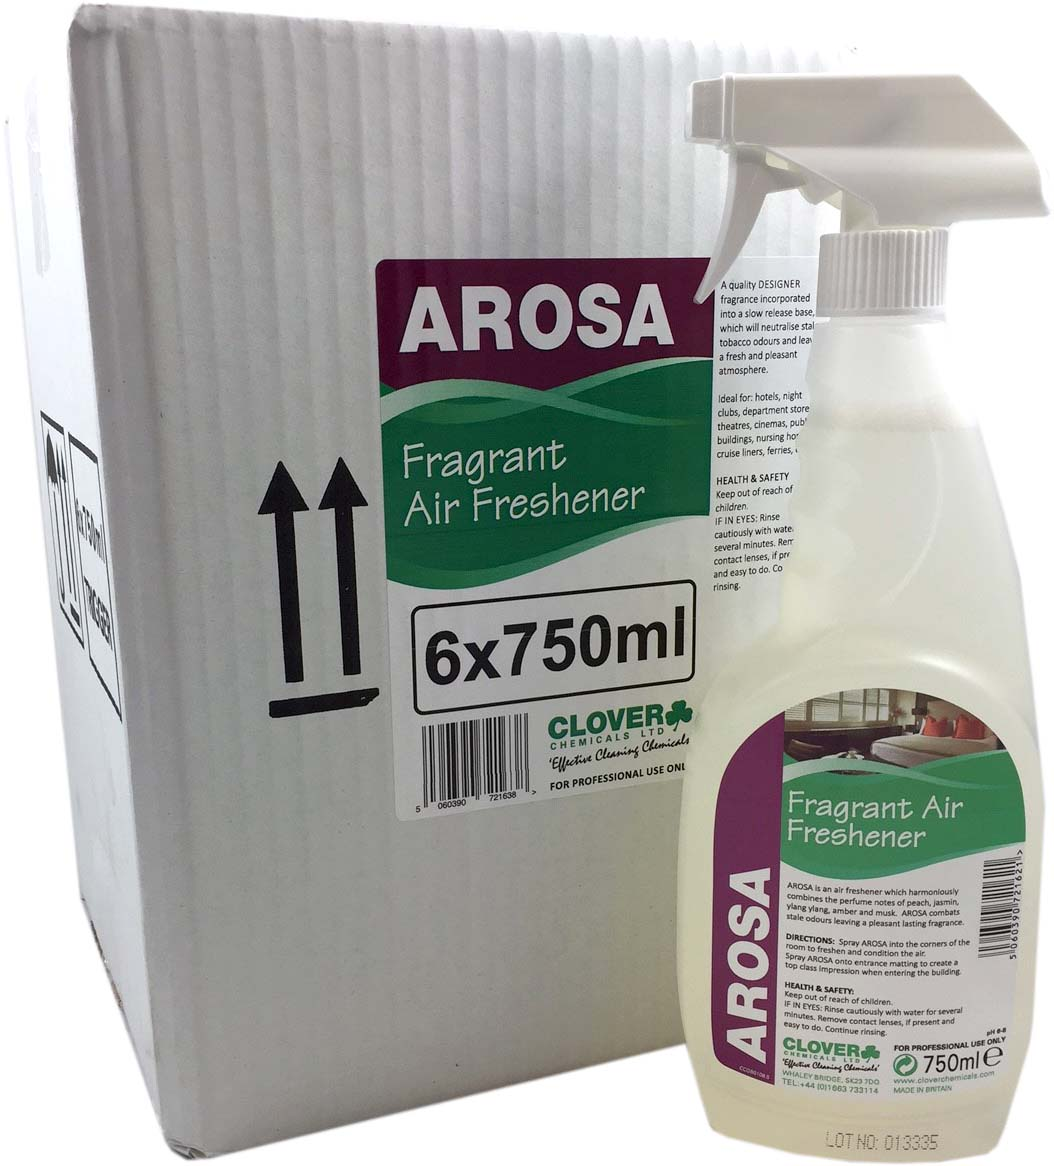 Arosa--Fragrant-Air-Freshener-6x750ml--case-